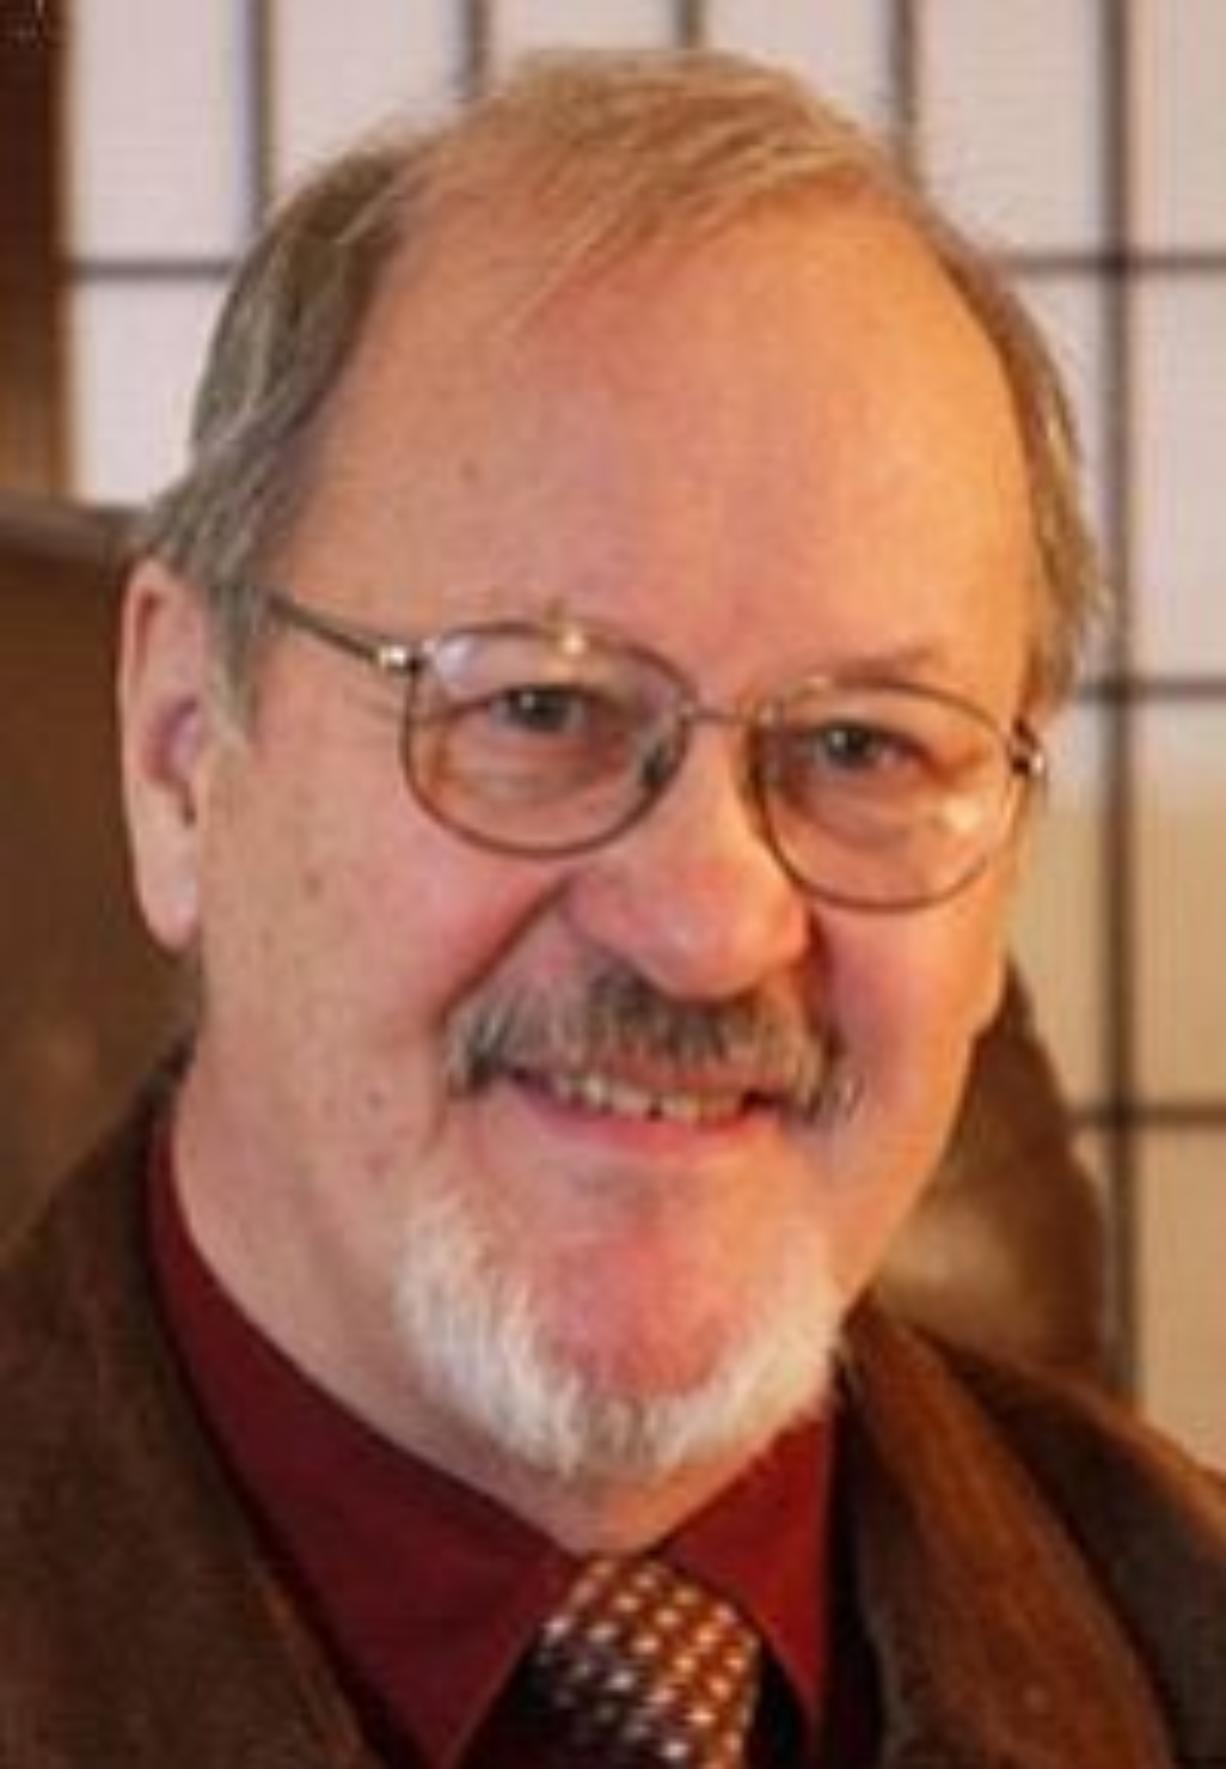 """Toby """"Pepper"""" Link of Ridgefield, 67, counseling psychologist at the Vancouver-based Center for Behavioral Medicine"""